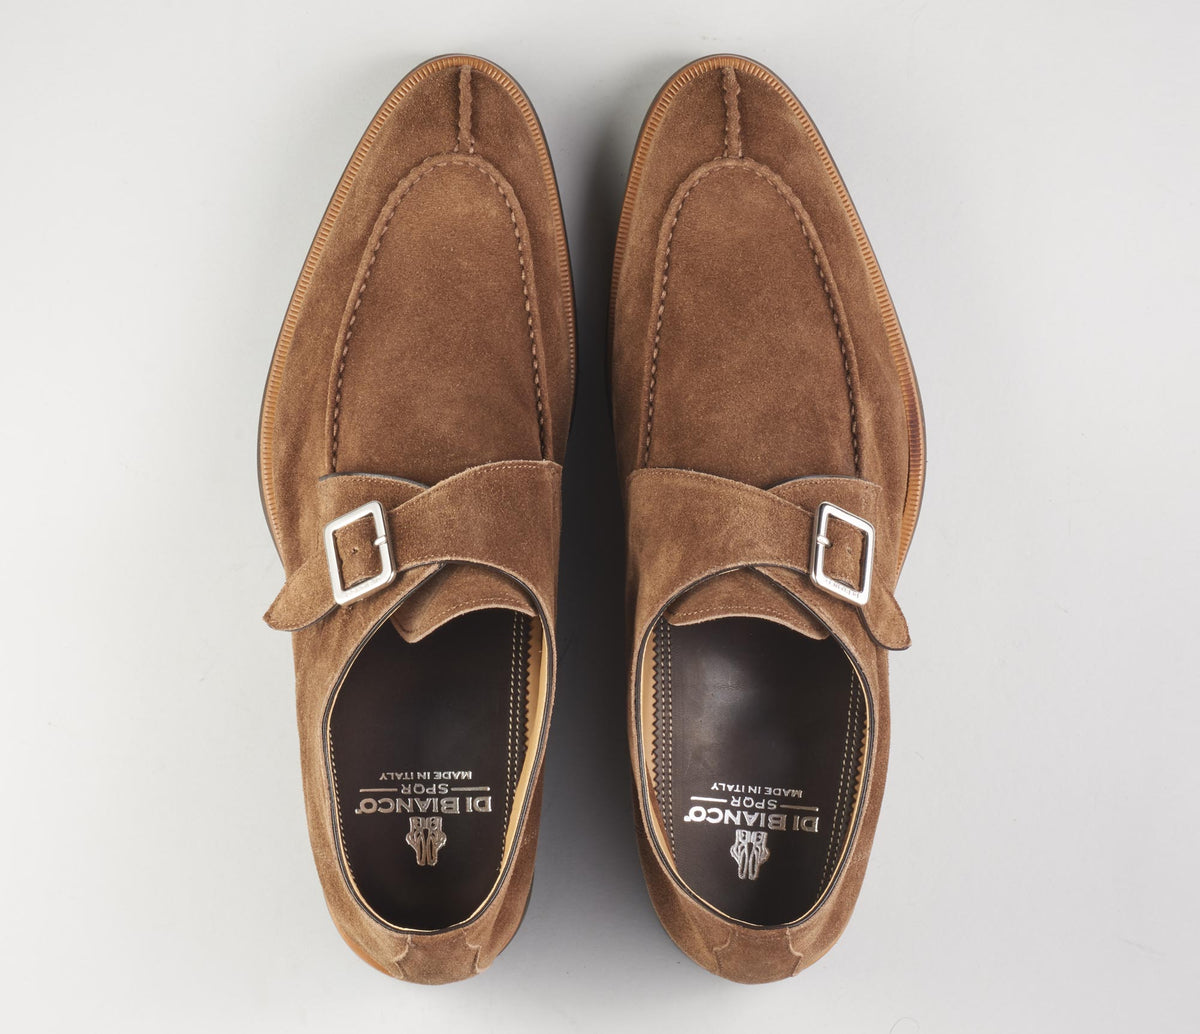 The Venezia Suede Farro Monk Strap Shoes